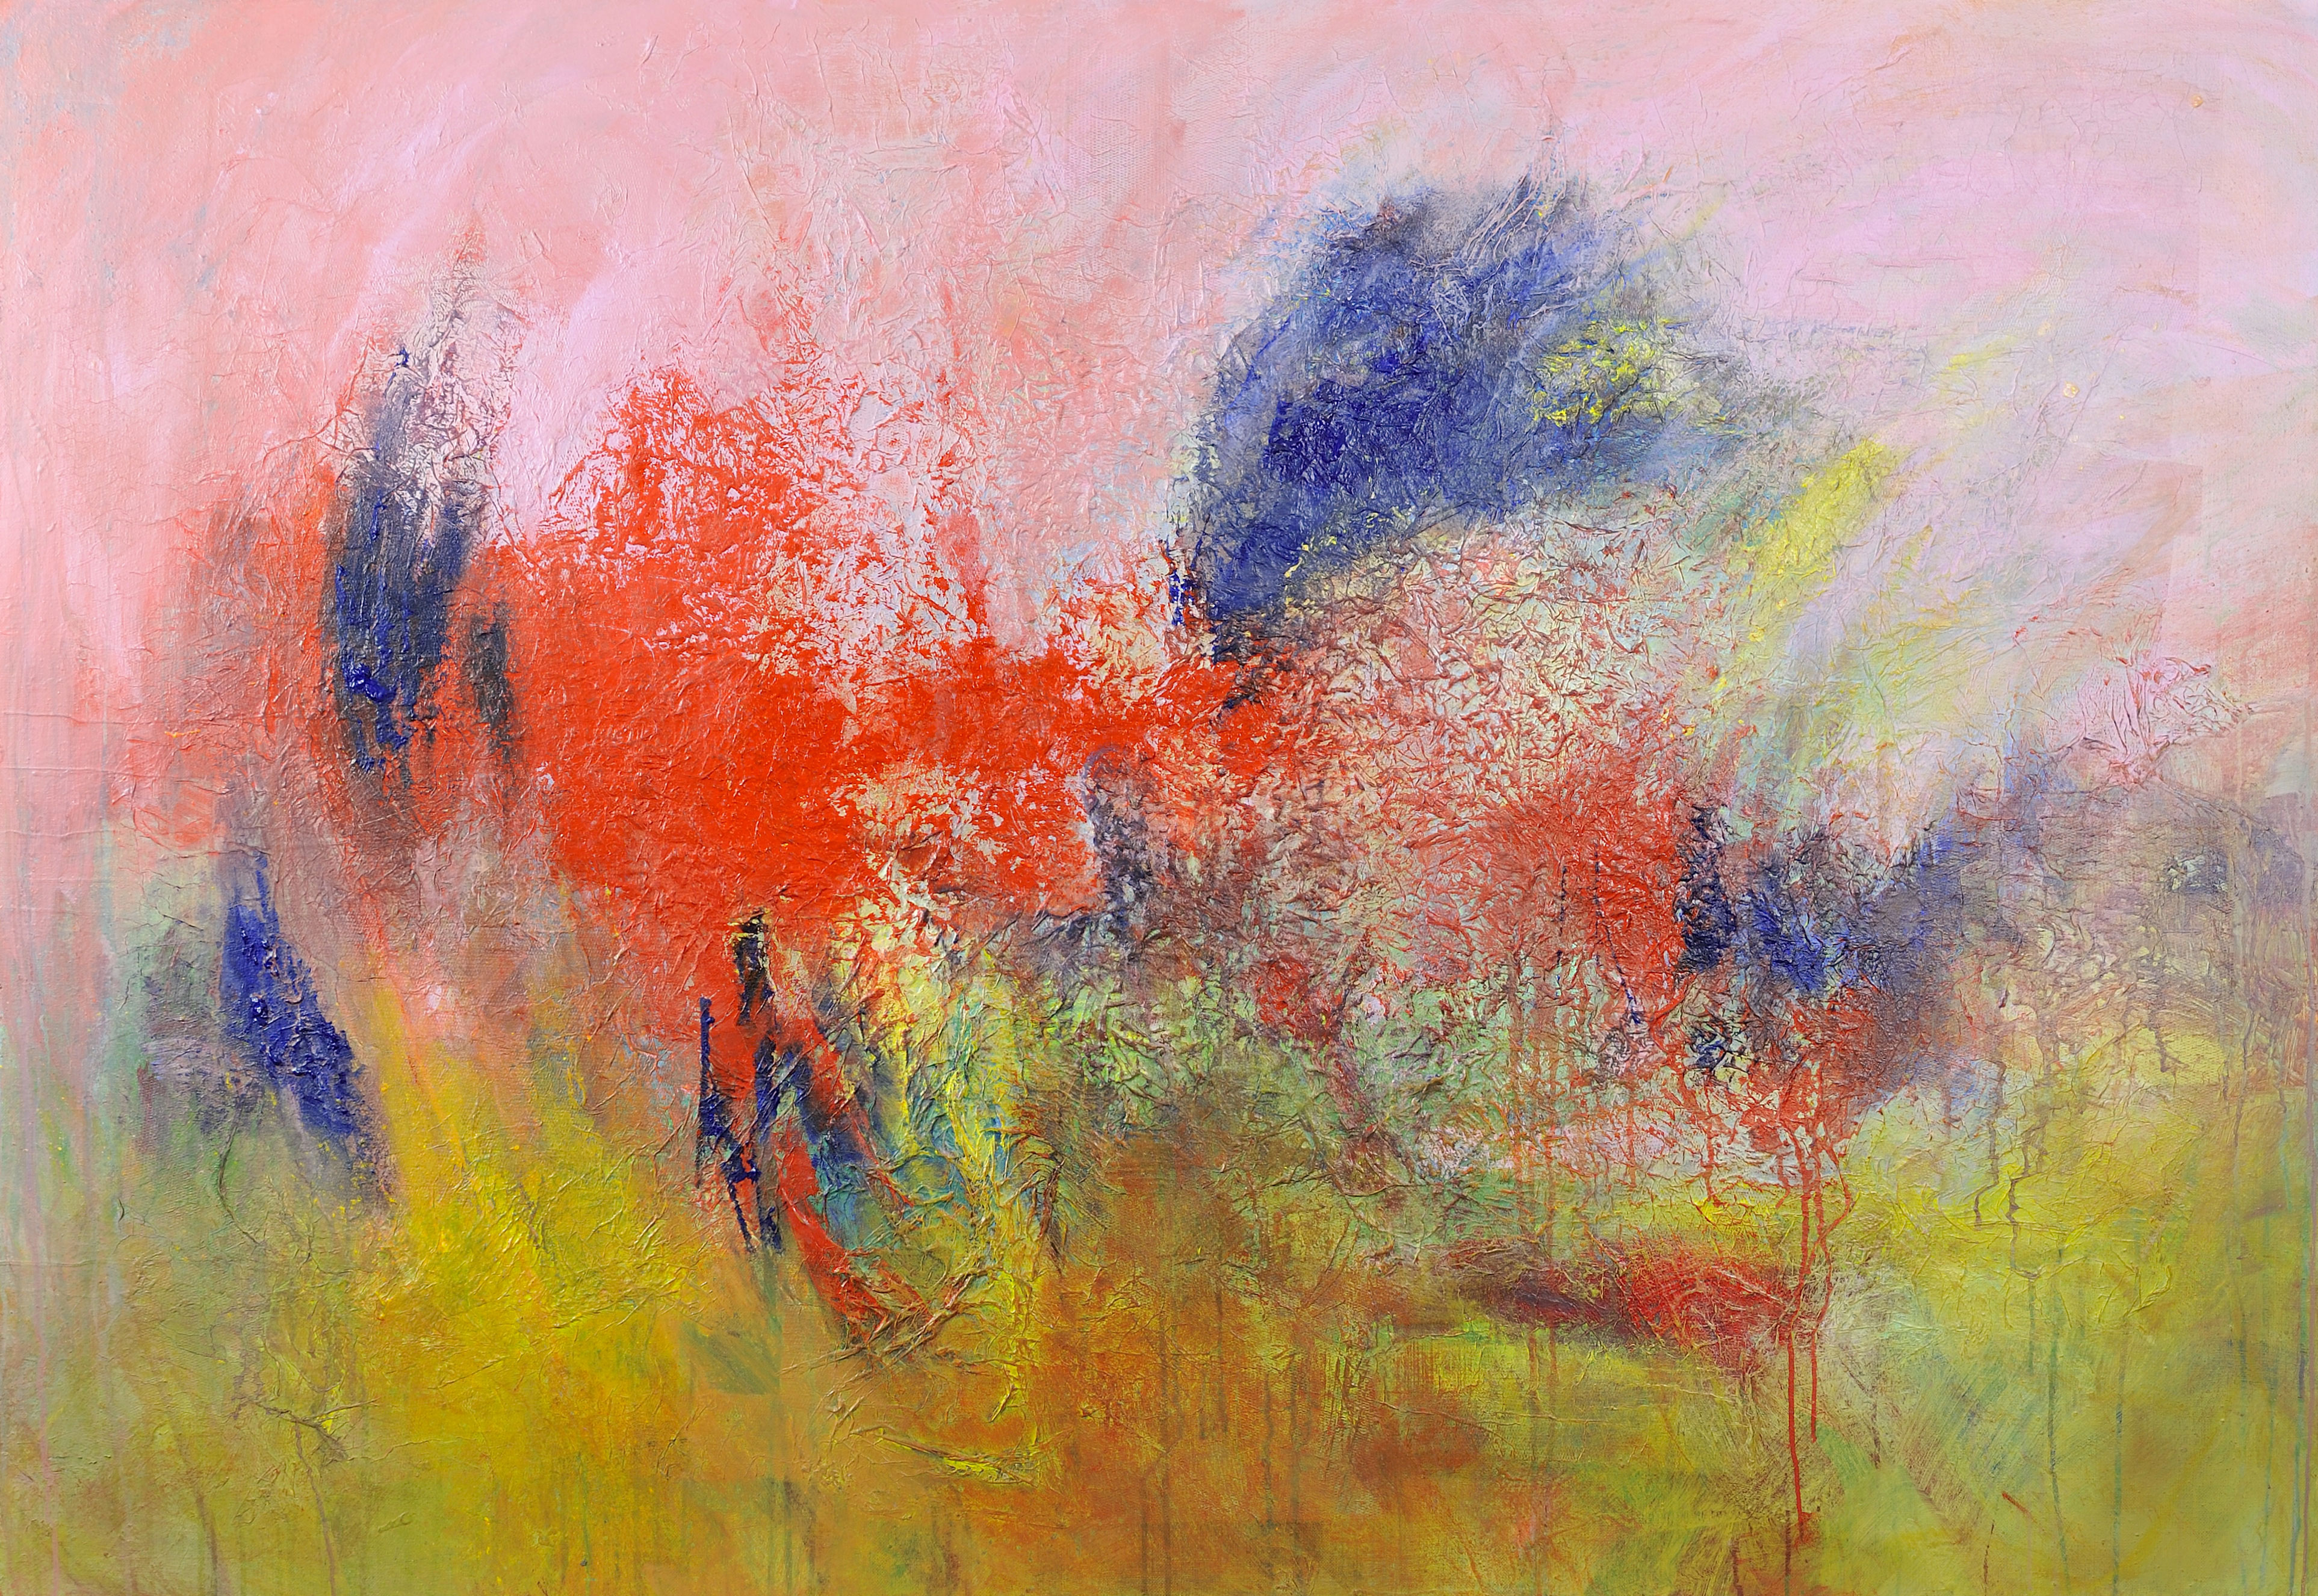 Blue Birds Red Trees artwork by Arnaud GAUTRON - art listed for sale on Artplode